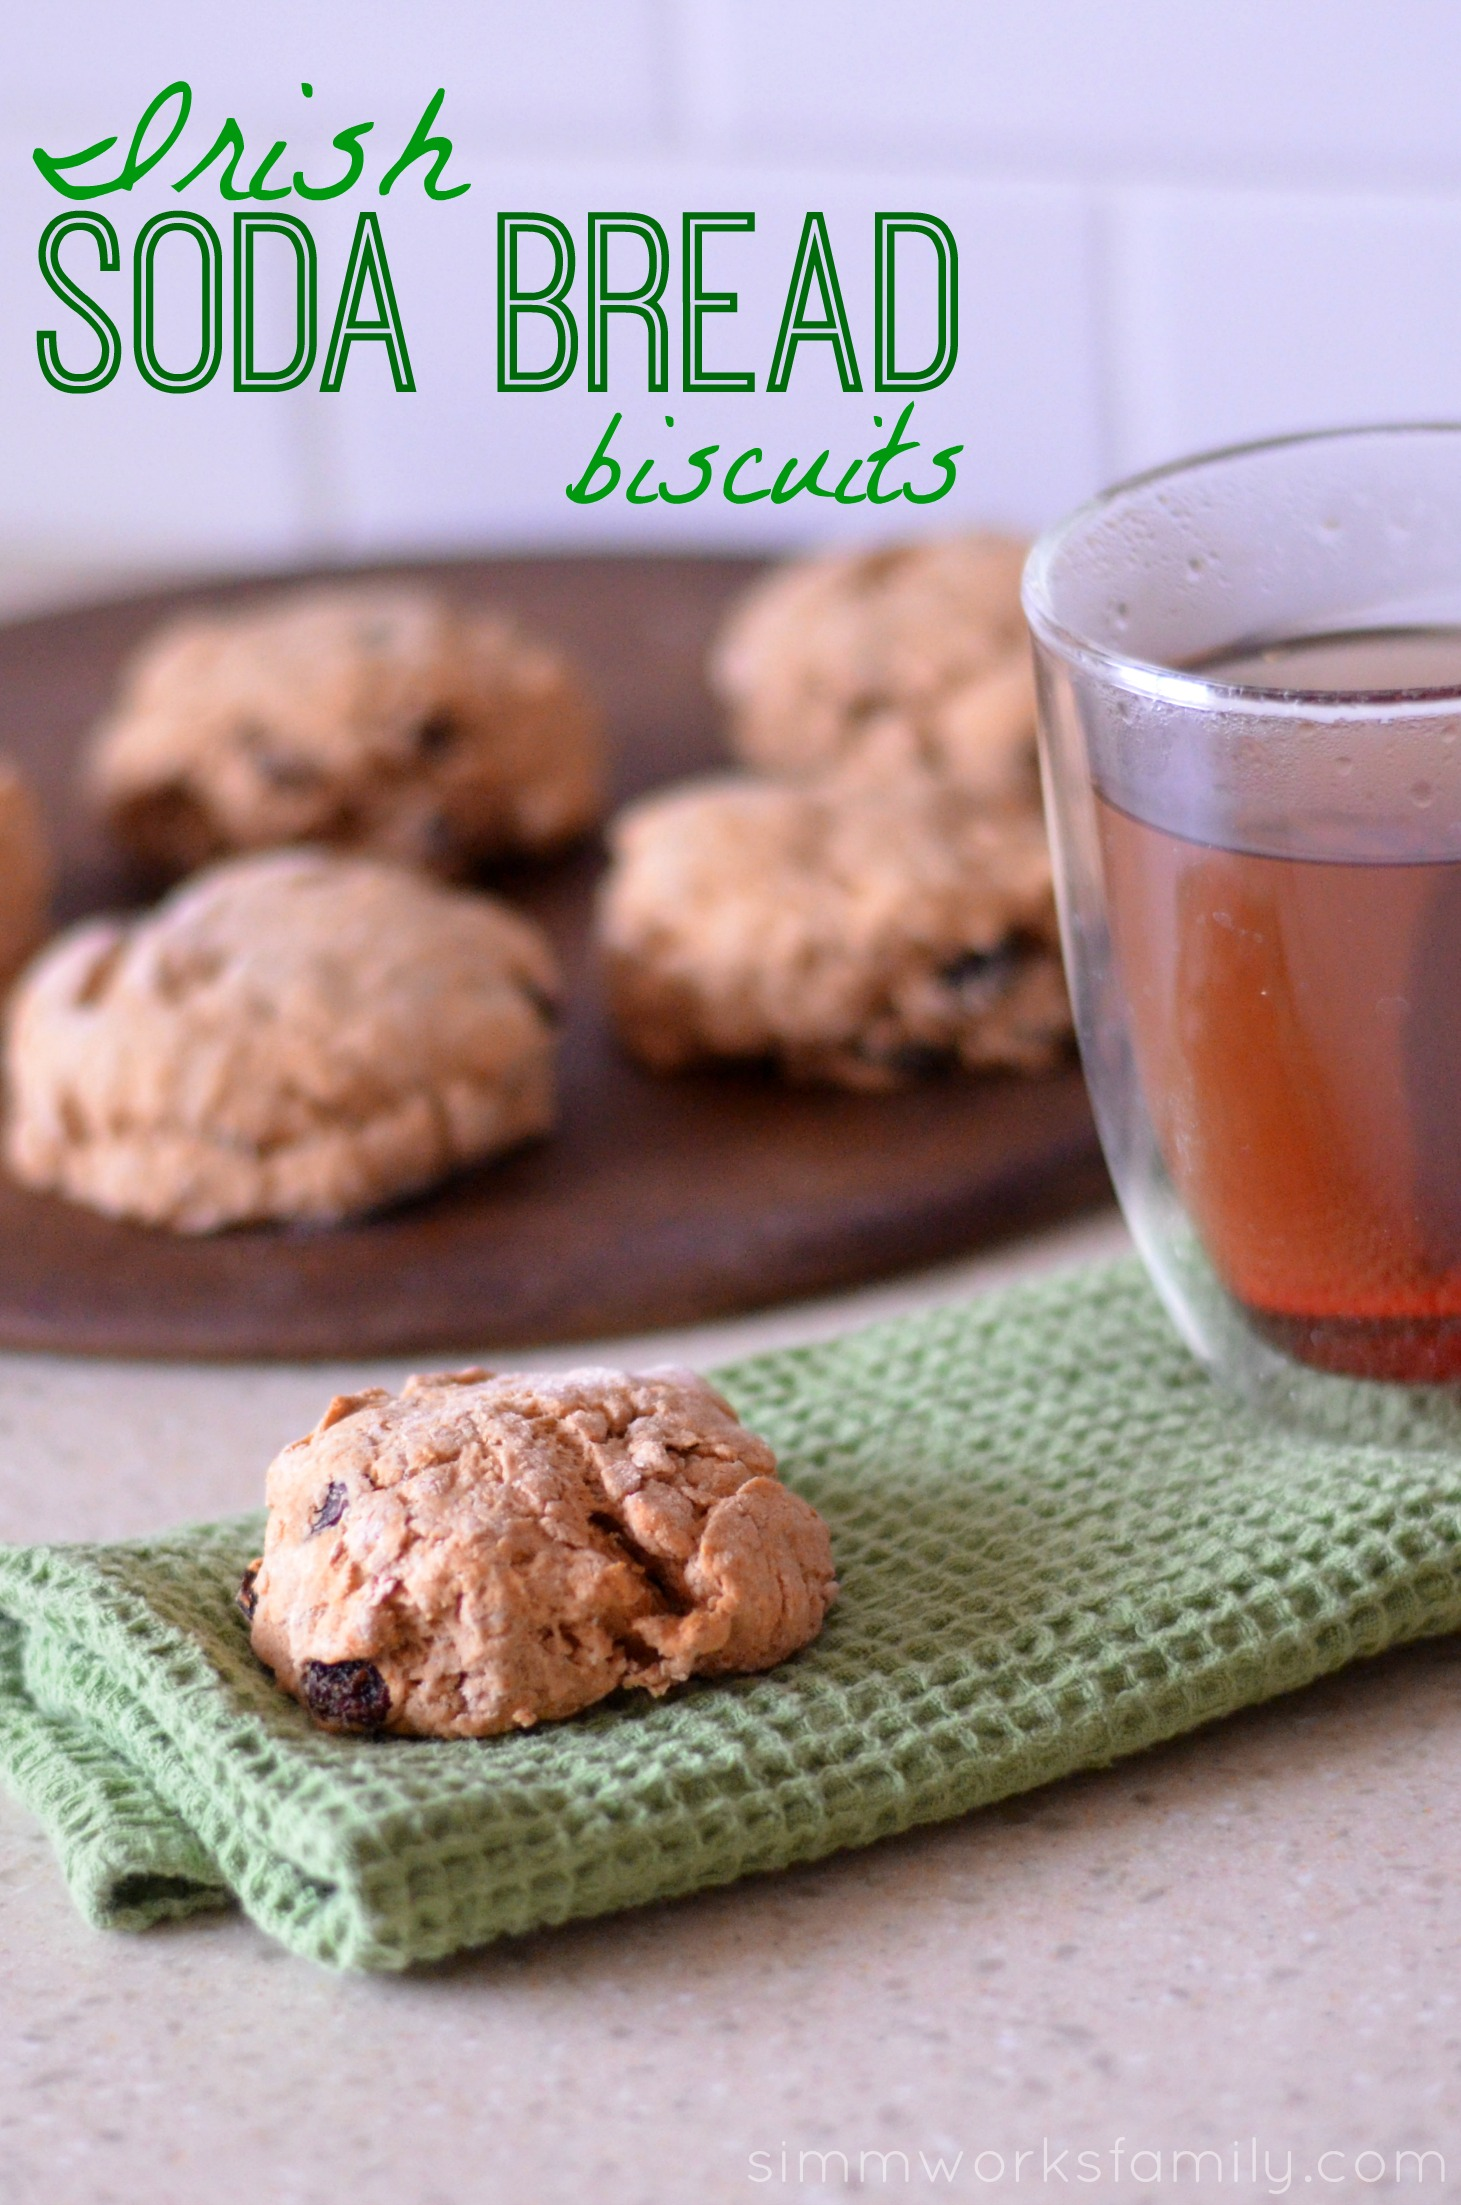 Irish Soda Bread Biscuits Recipe | A Crafty Spoonful